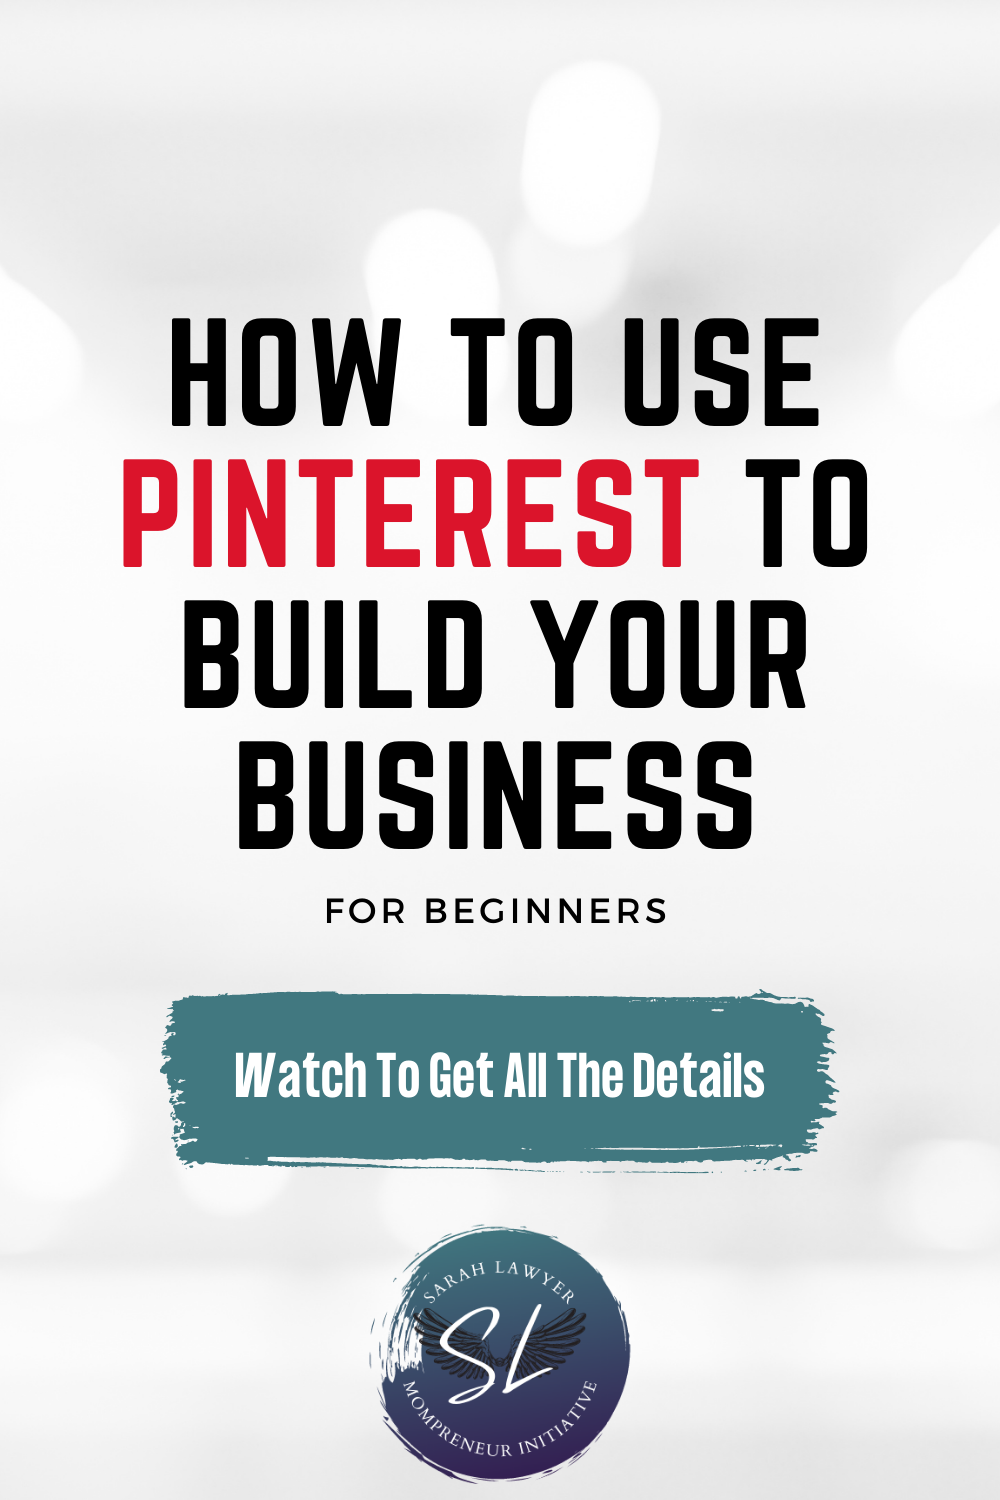 How to use Pinterest to build your business